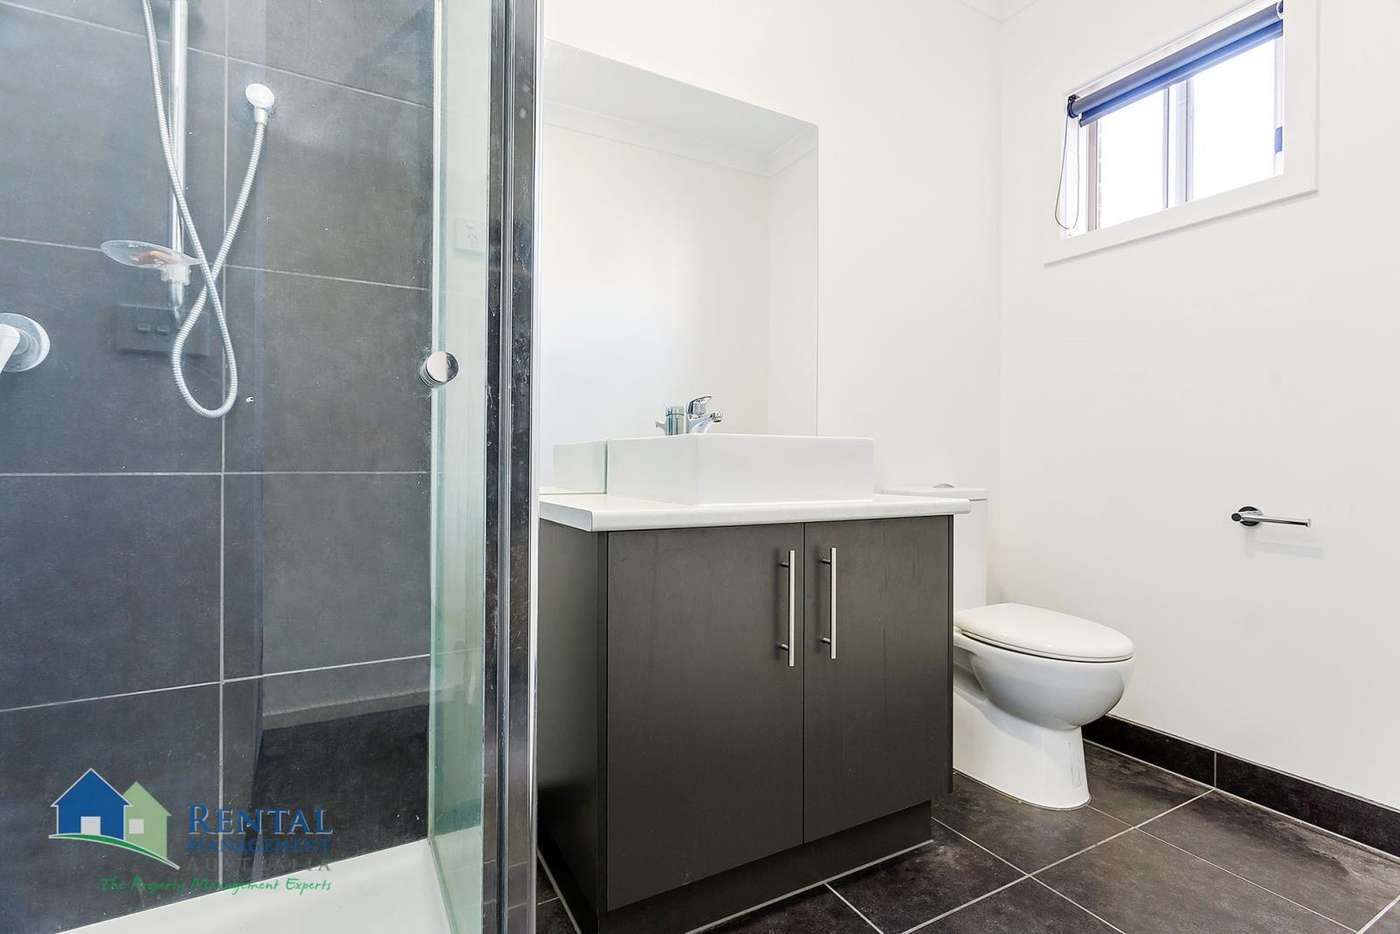 Seventh view of Homely house listing, 3 Dundas Road, Wyndham Vale VIC 3024